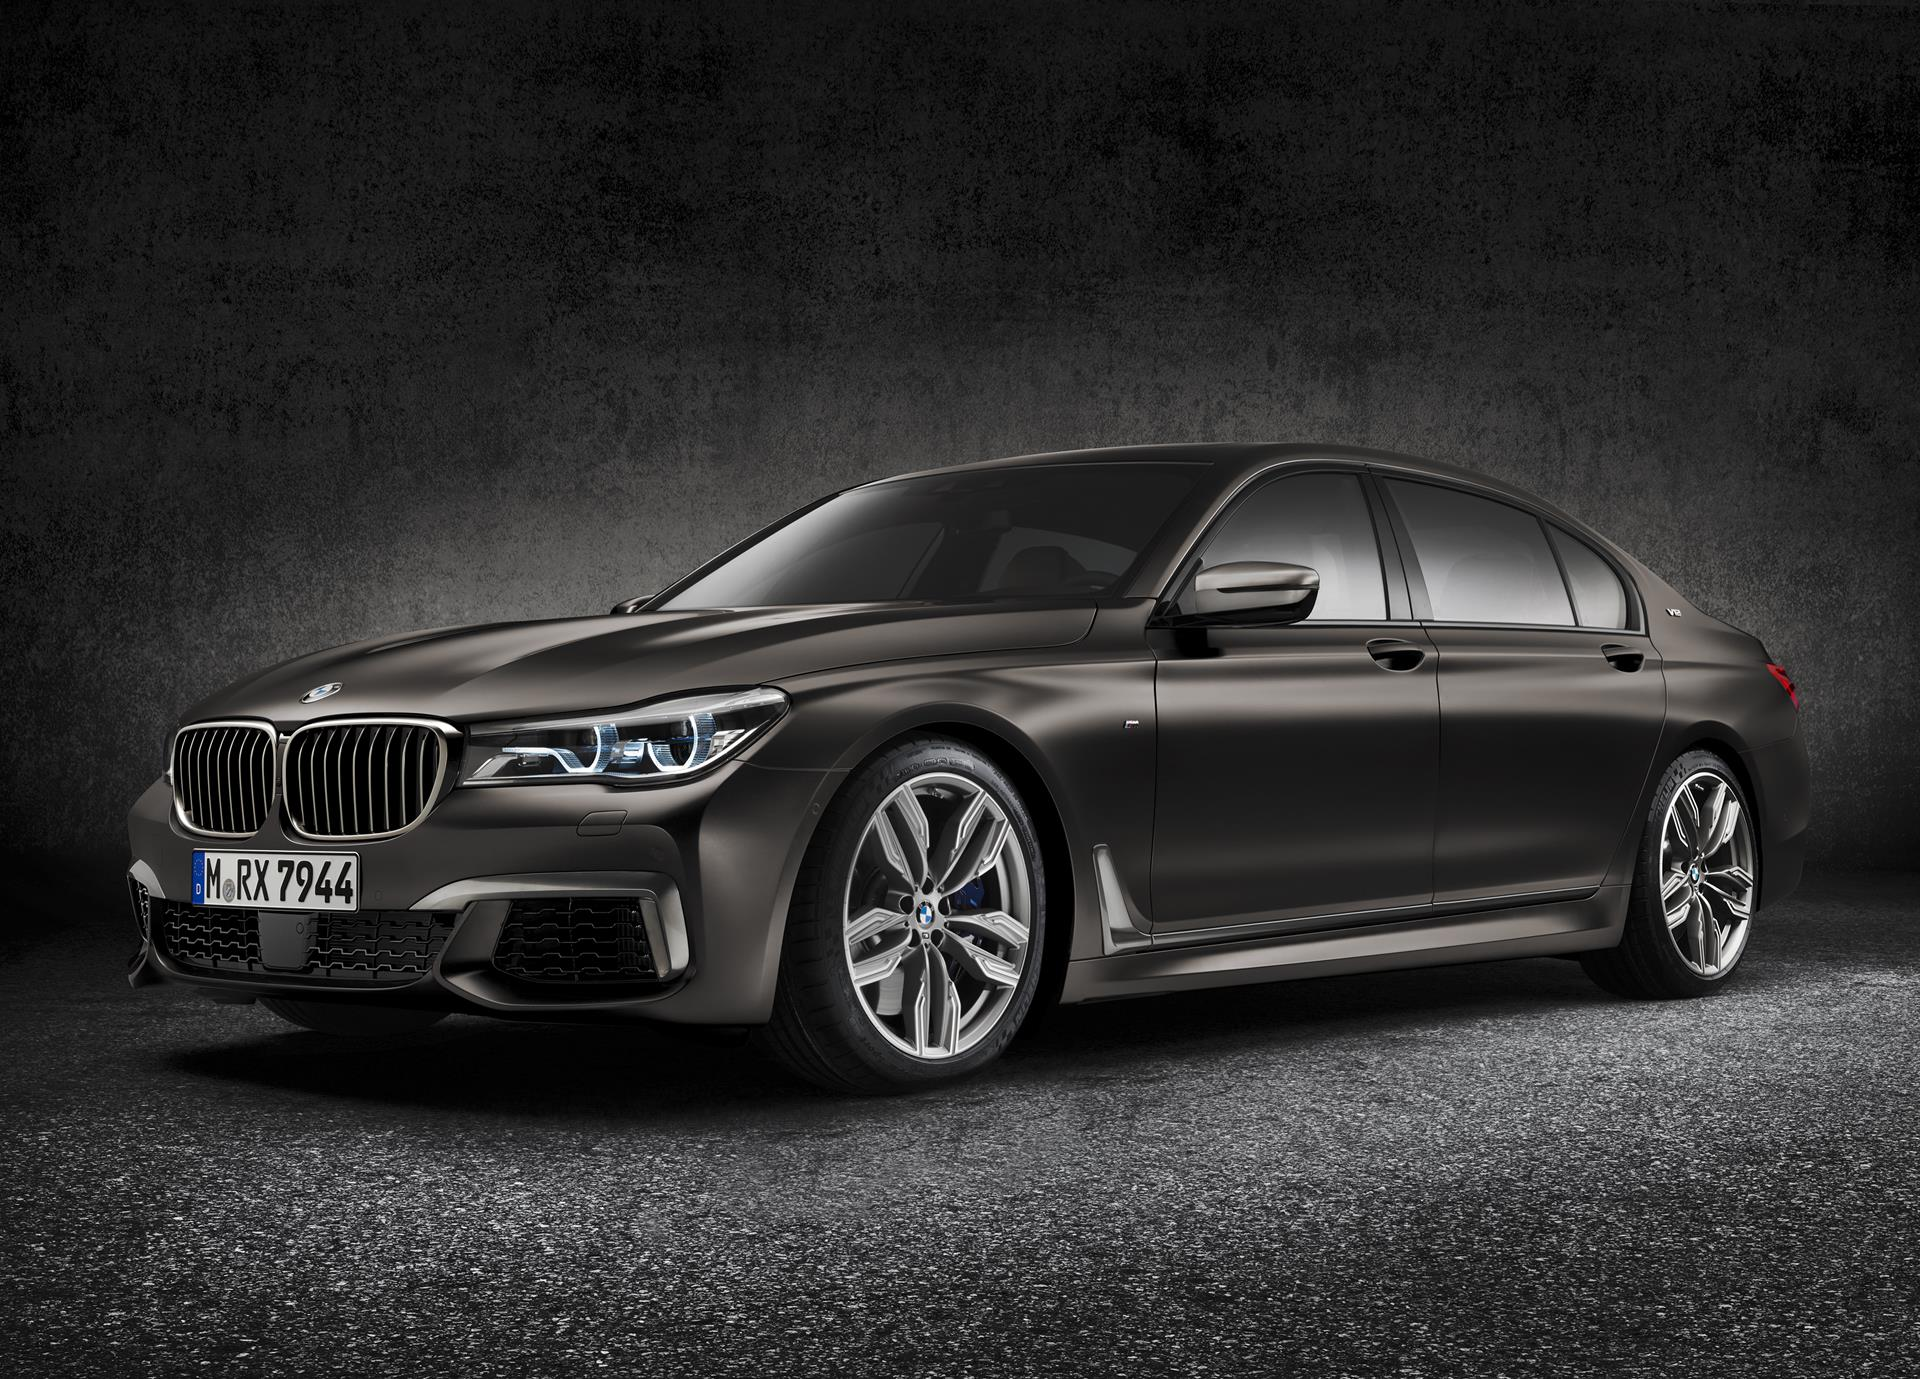 2017 Bmw M760li Xdrive News And Information